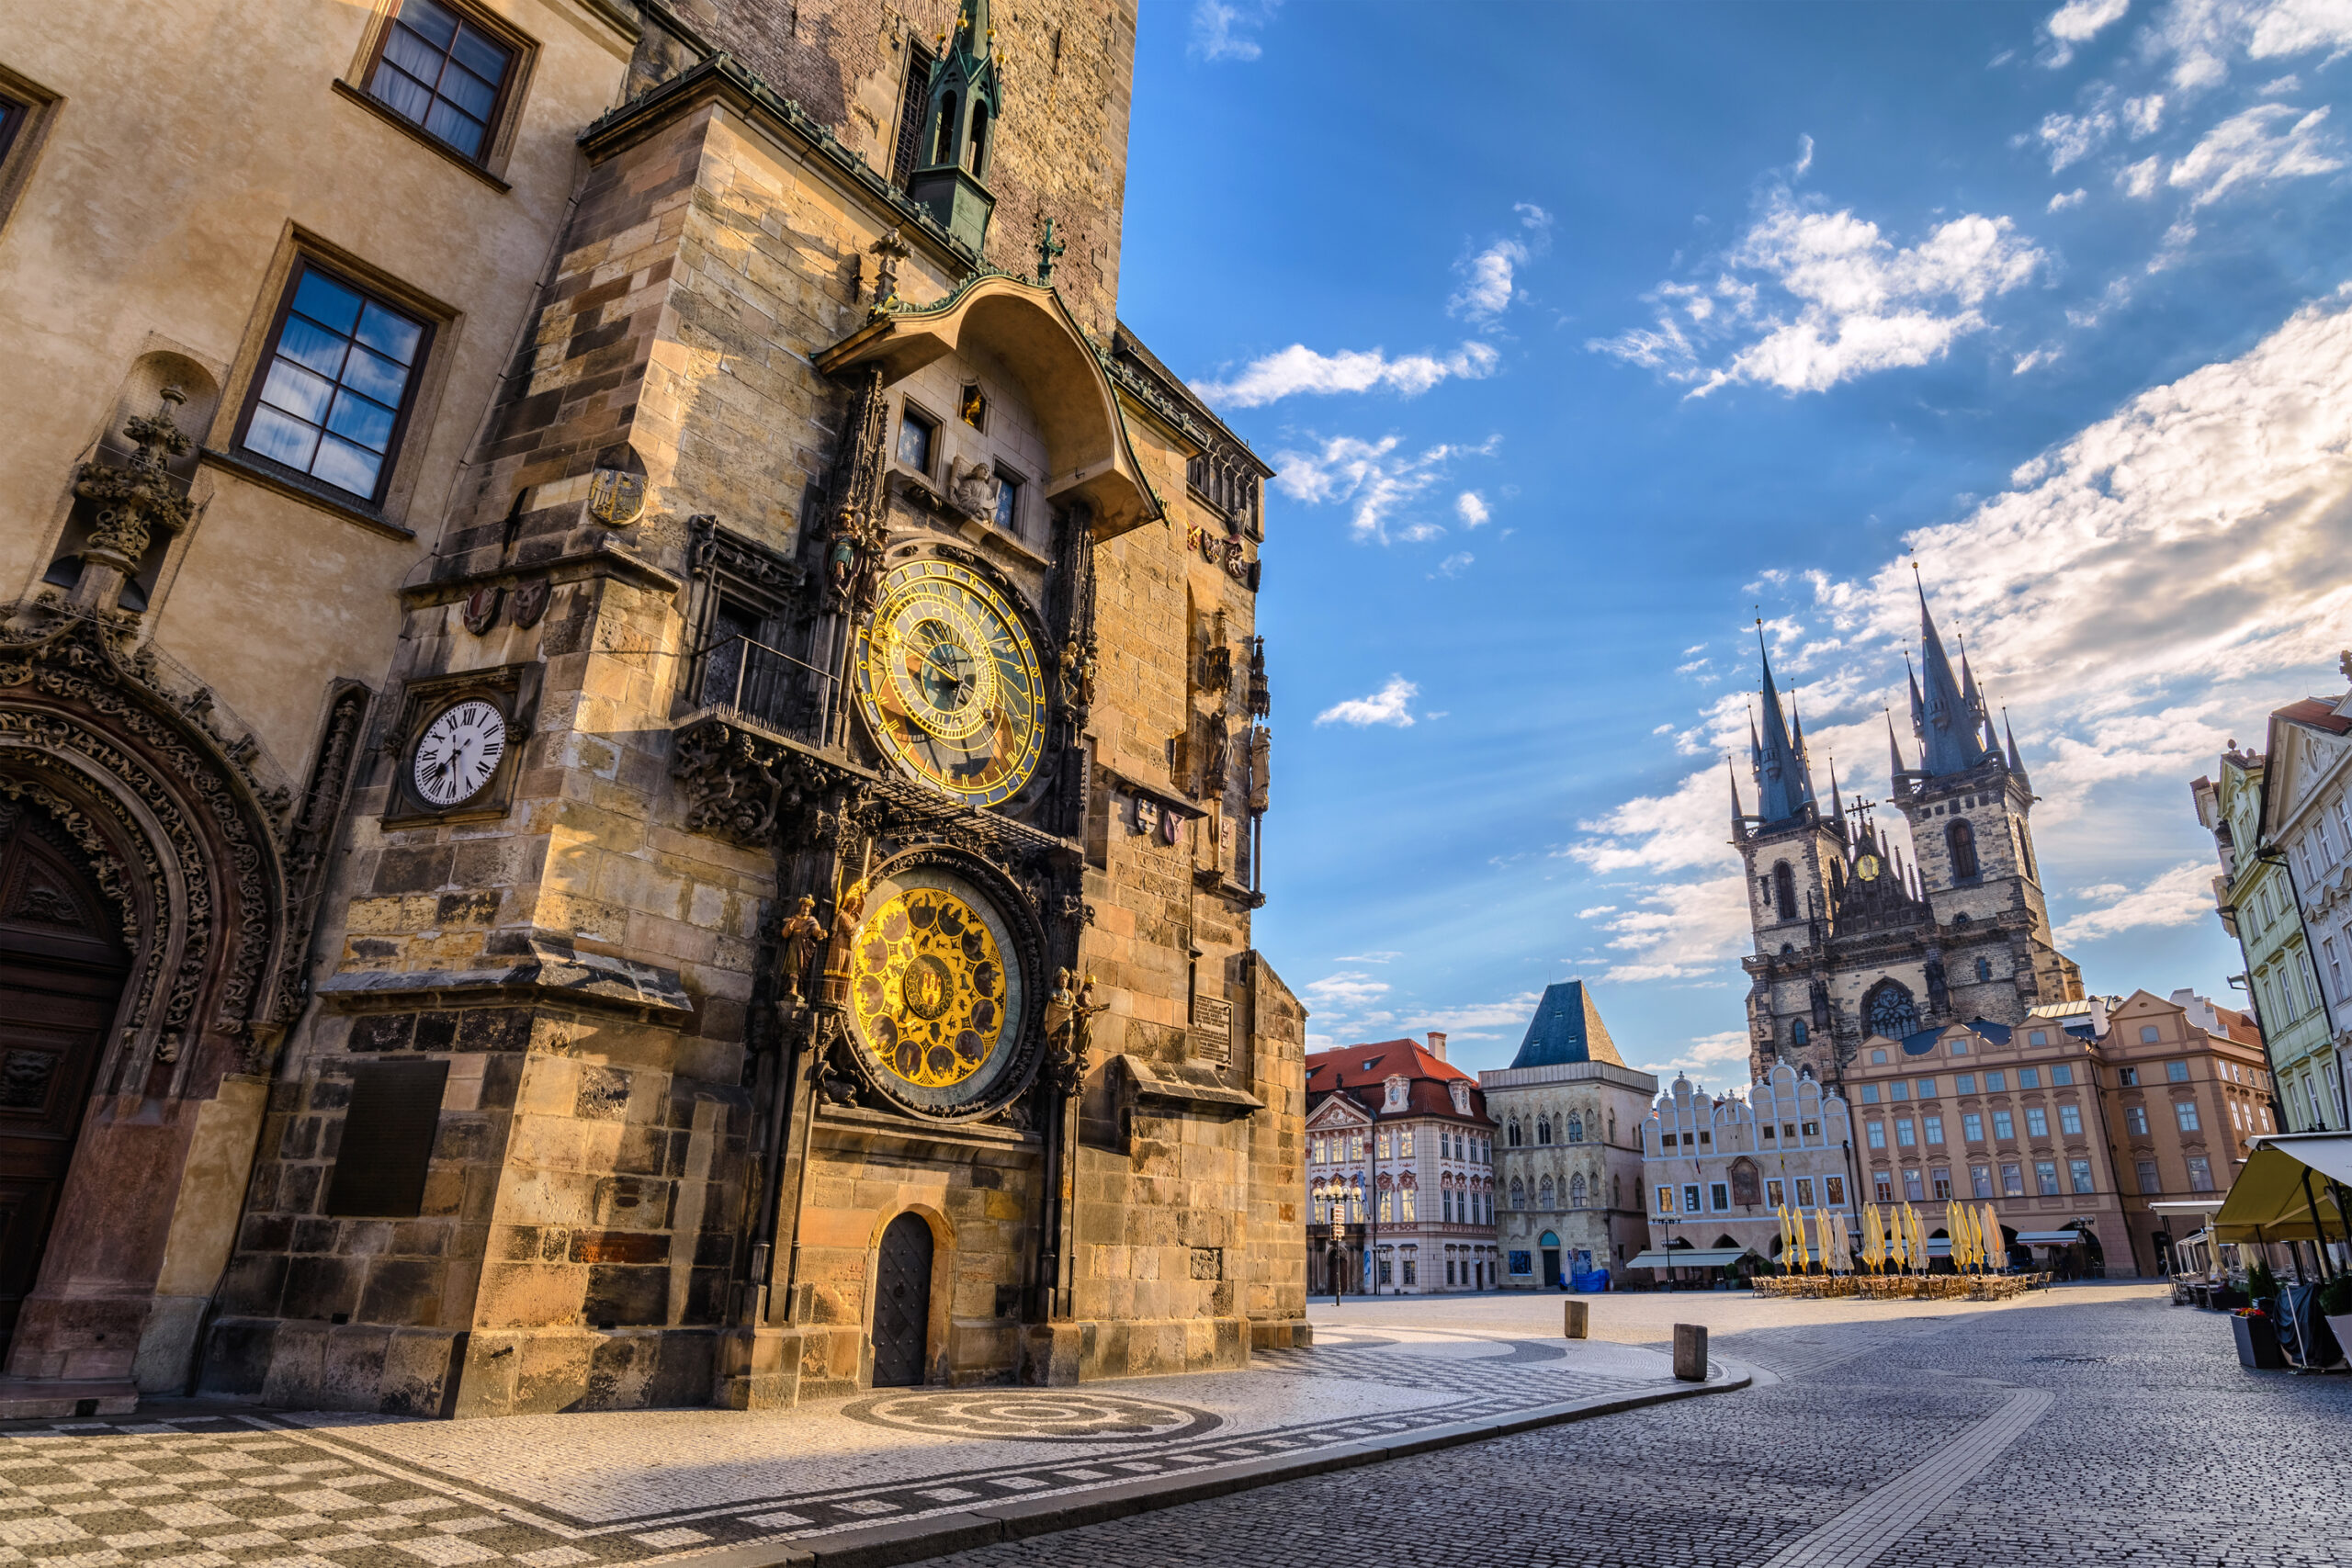 Vacation planning – Best places to visit in Europe